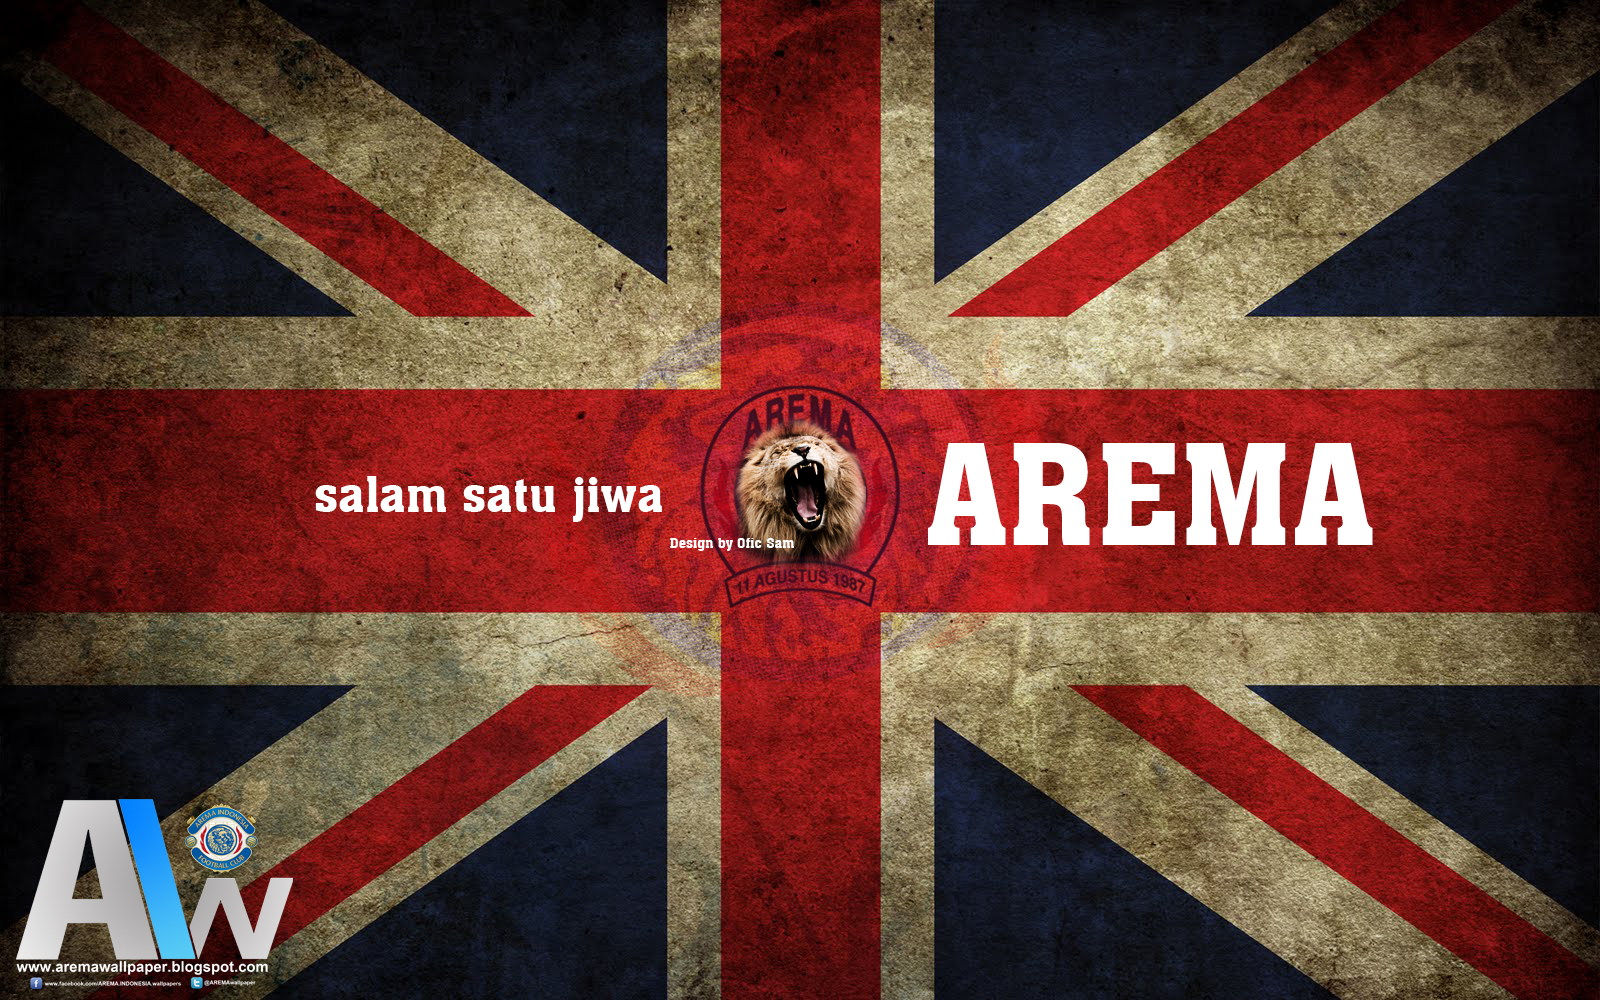 http://1.bp.blogspot.com/-nfs_5NgAKw8/TrVVaO9iX5I/AAAAAAAAAuA/GMS3bDTSVVA/s1600/wallpaper+AREMA+INDONESIA+2011+edisi+NOVEMBER%2528flag+AREMA+INDONESIA%2529Ofic+Sam-AREMA+INDONESIA+wallpapers.jpg